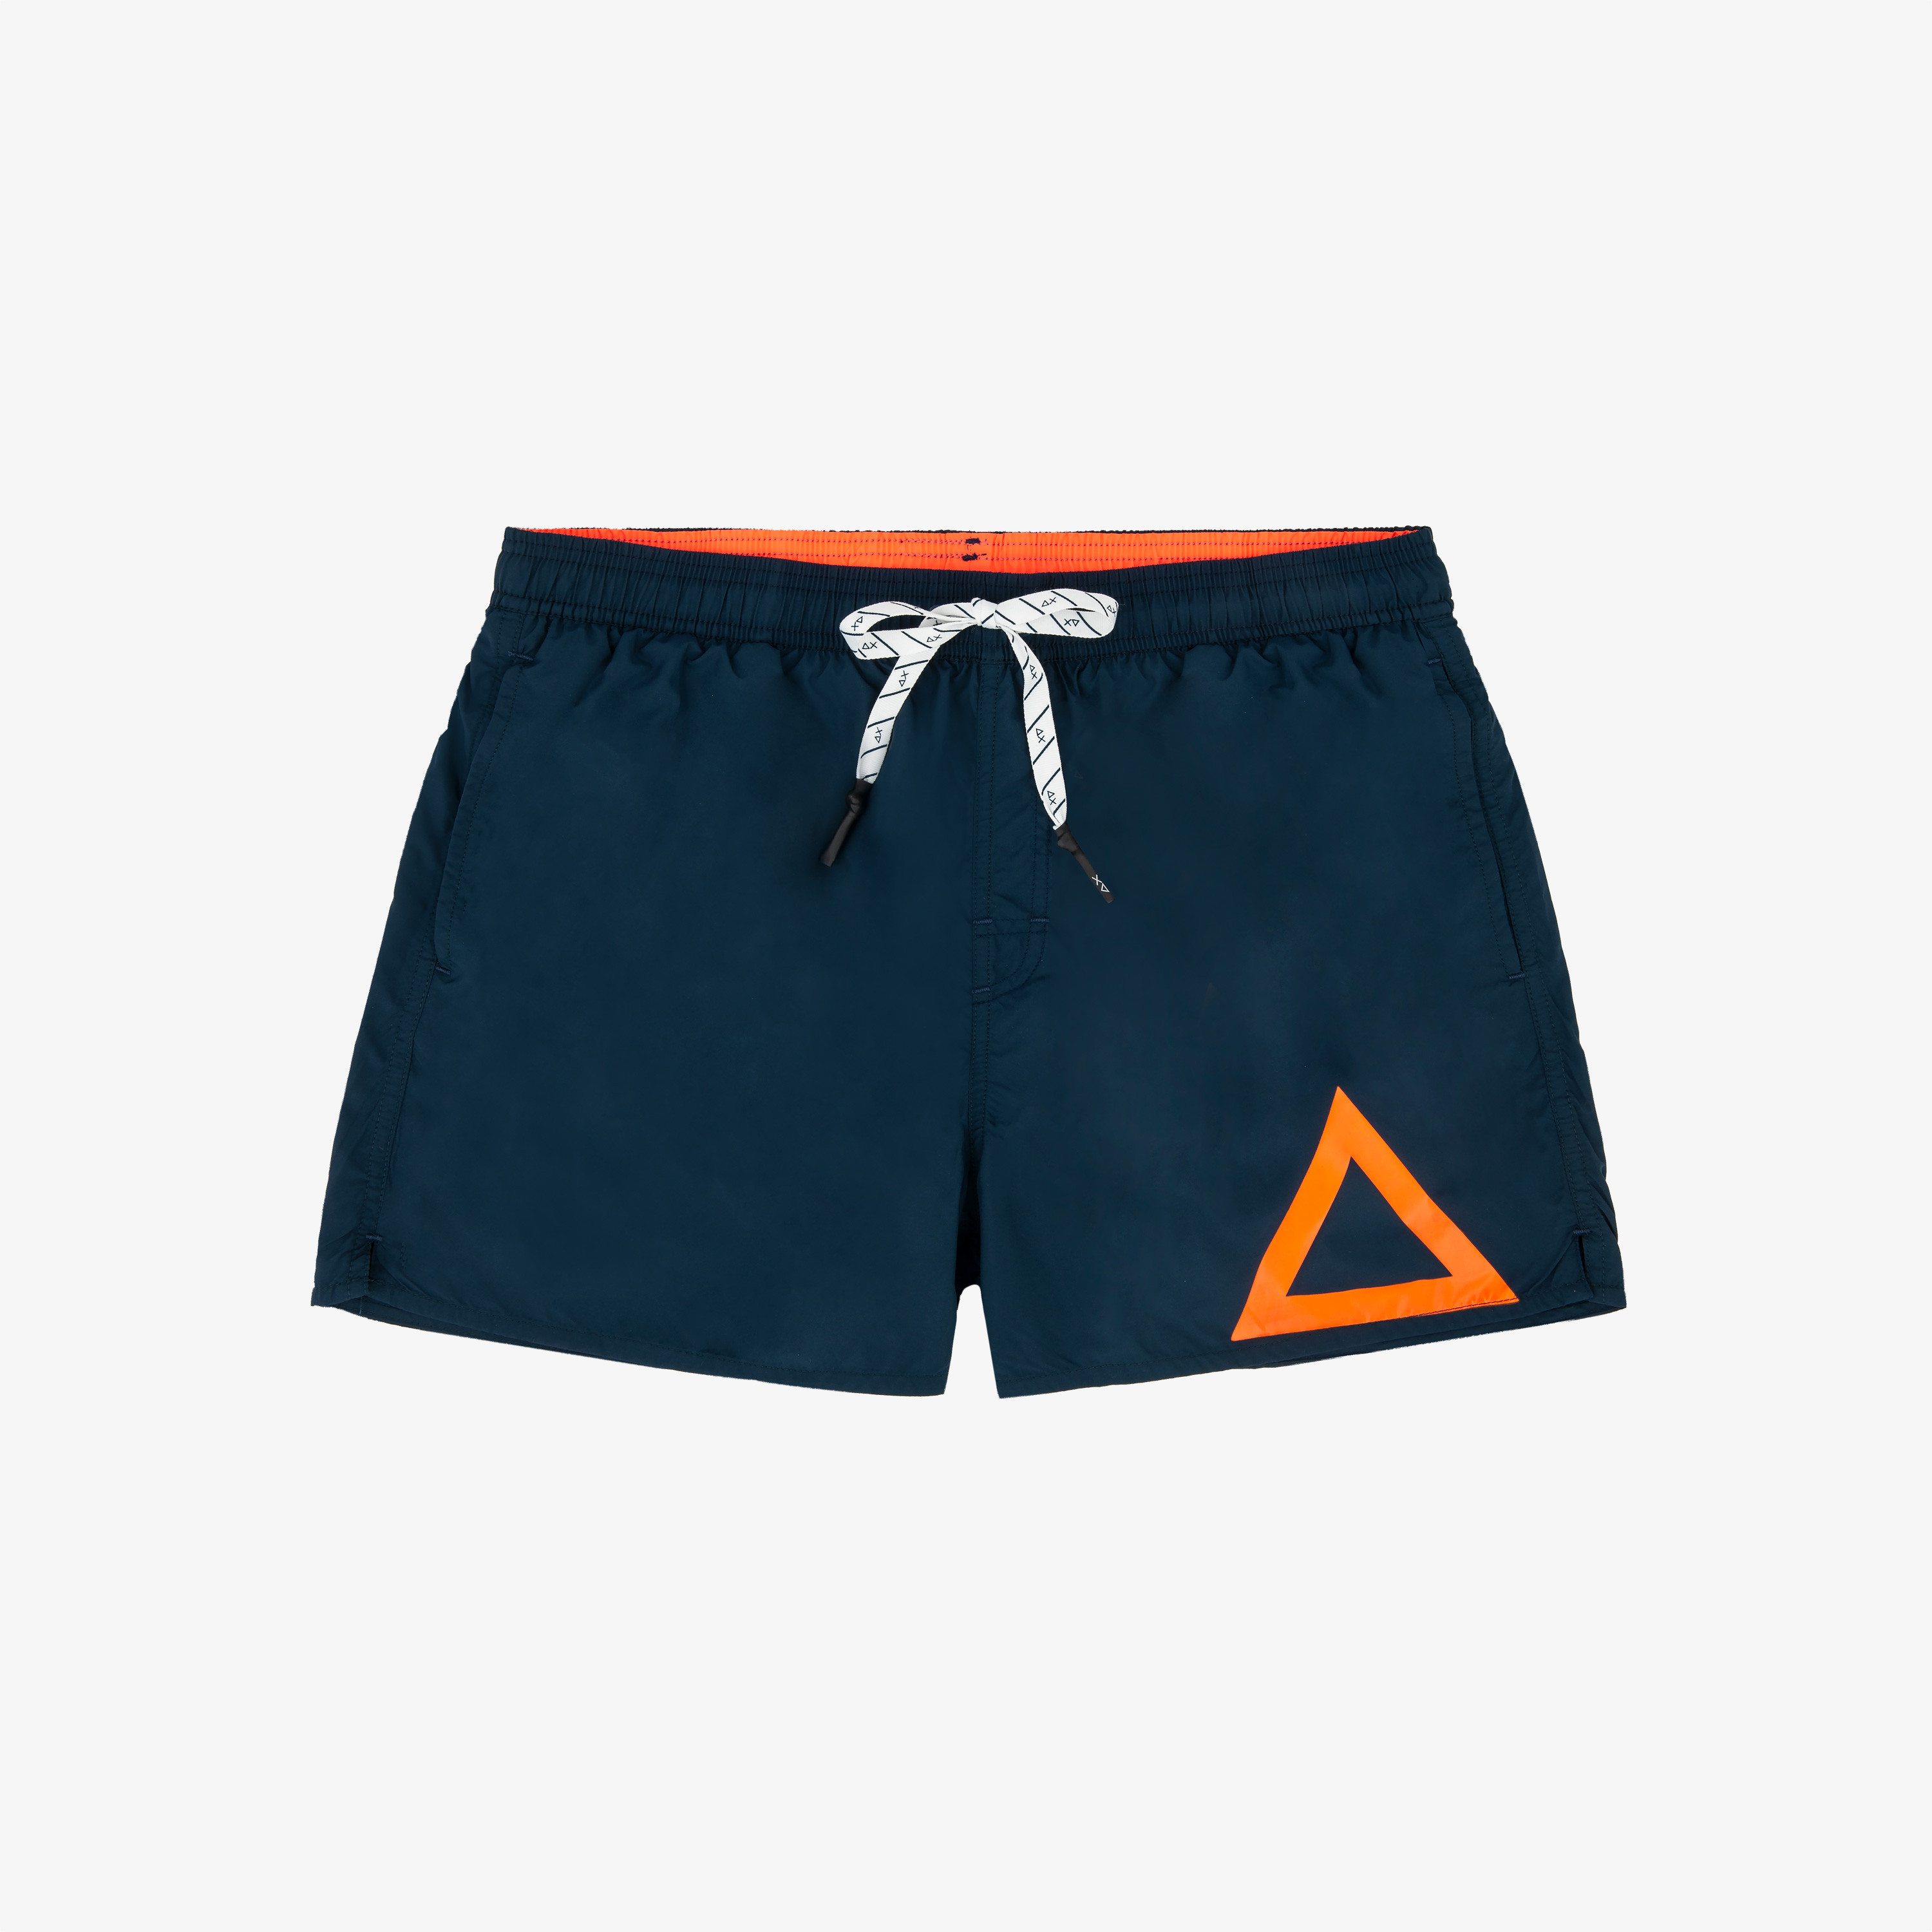 SWIM PANT SOLID BIG LOGO NAVY BLUE